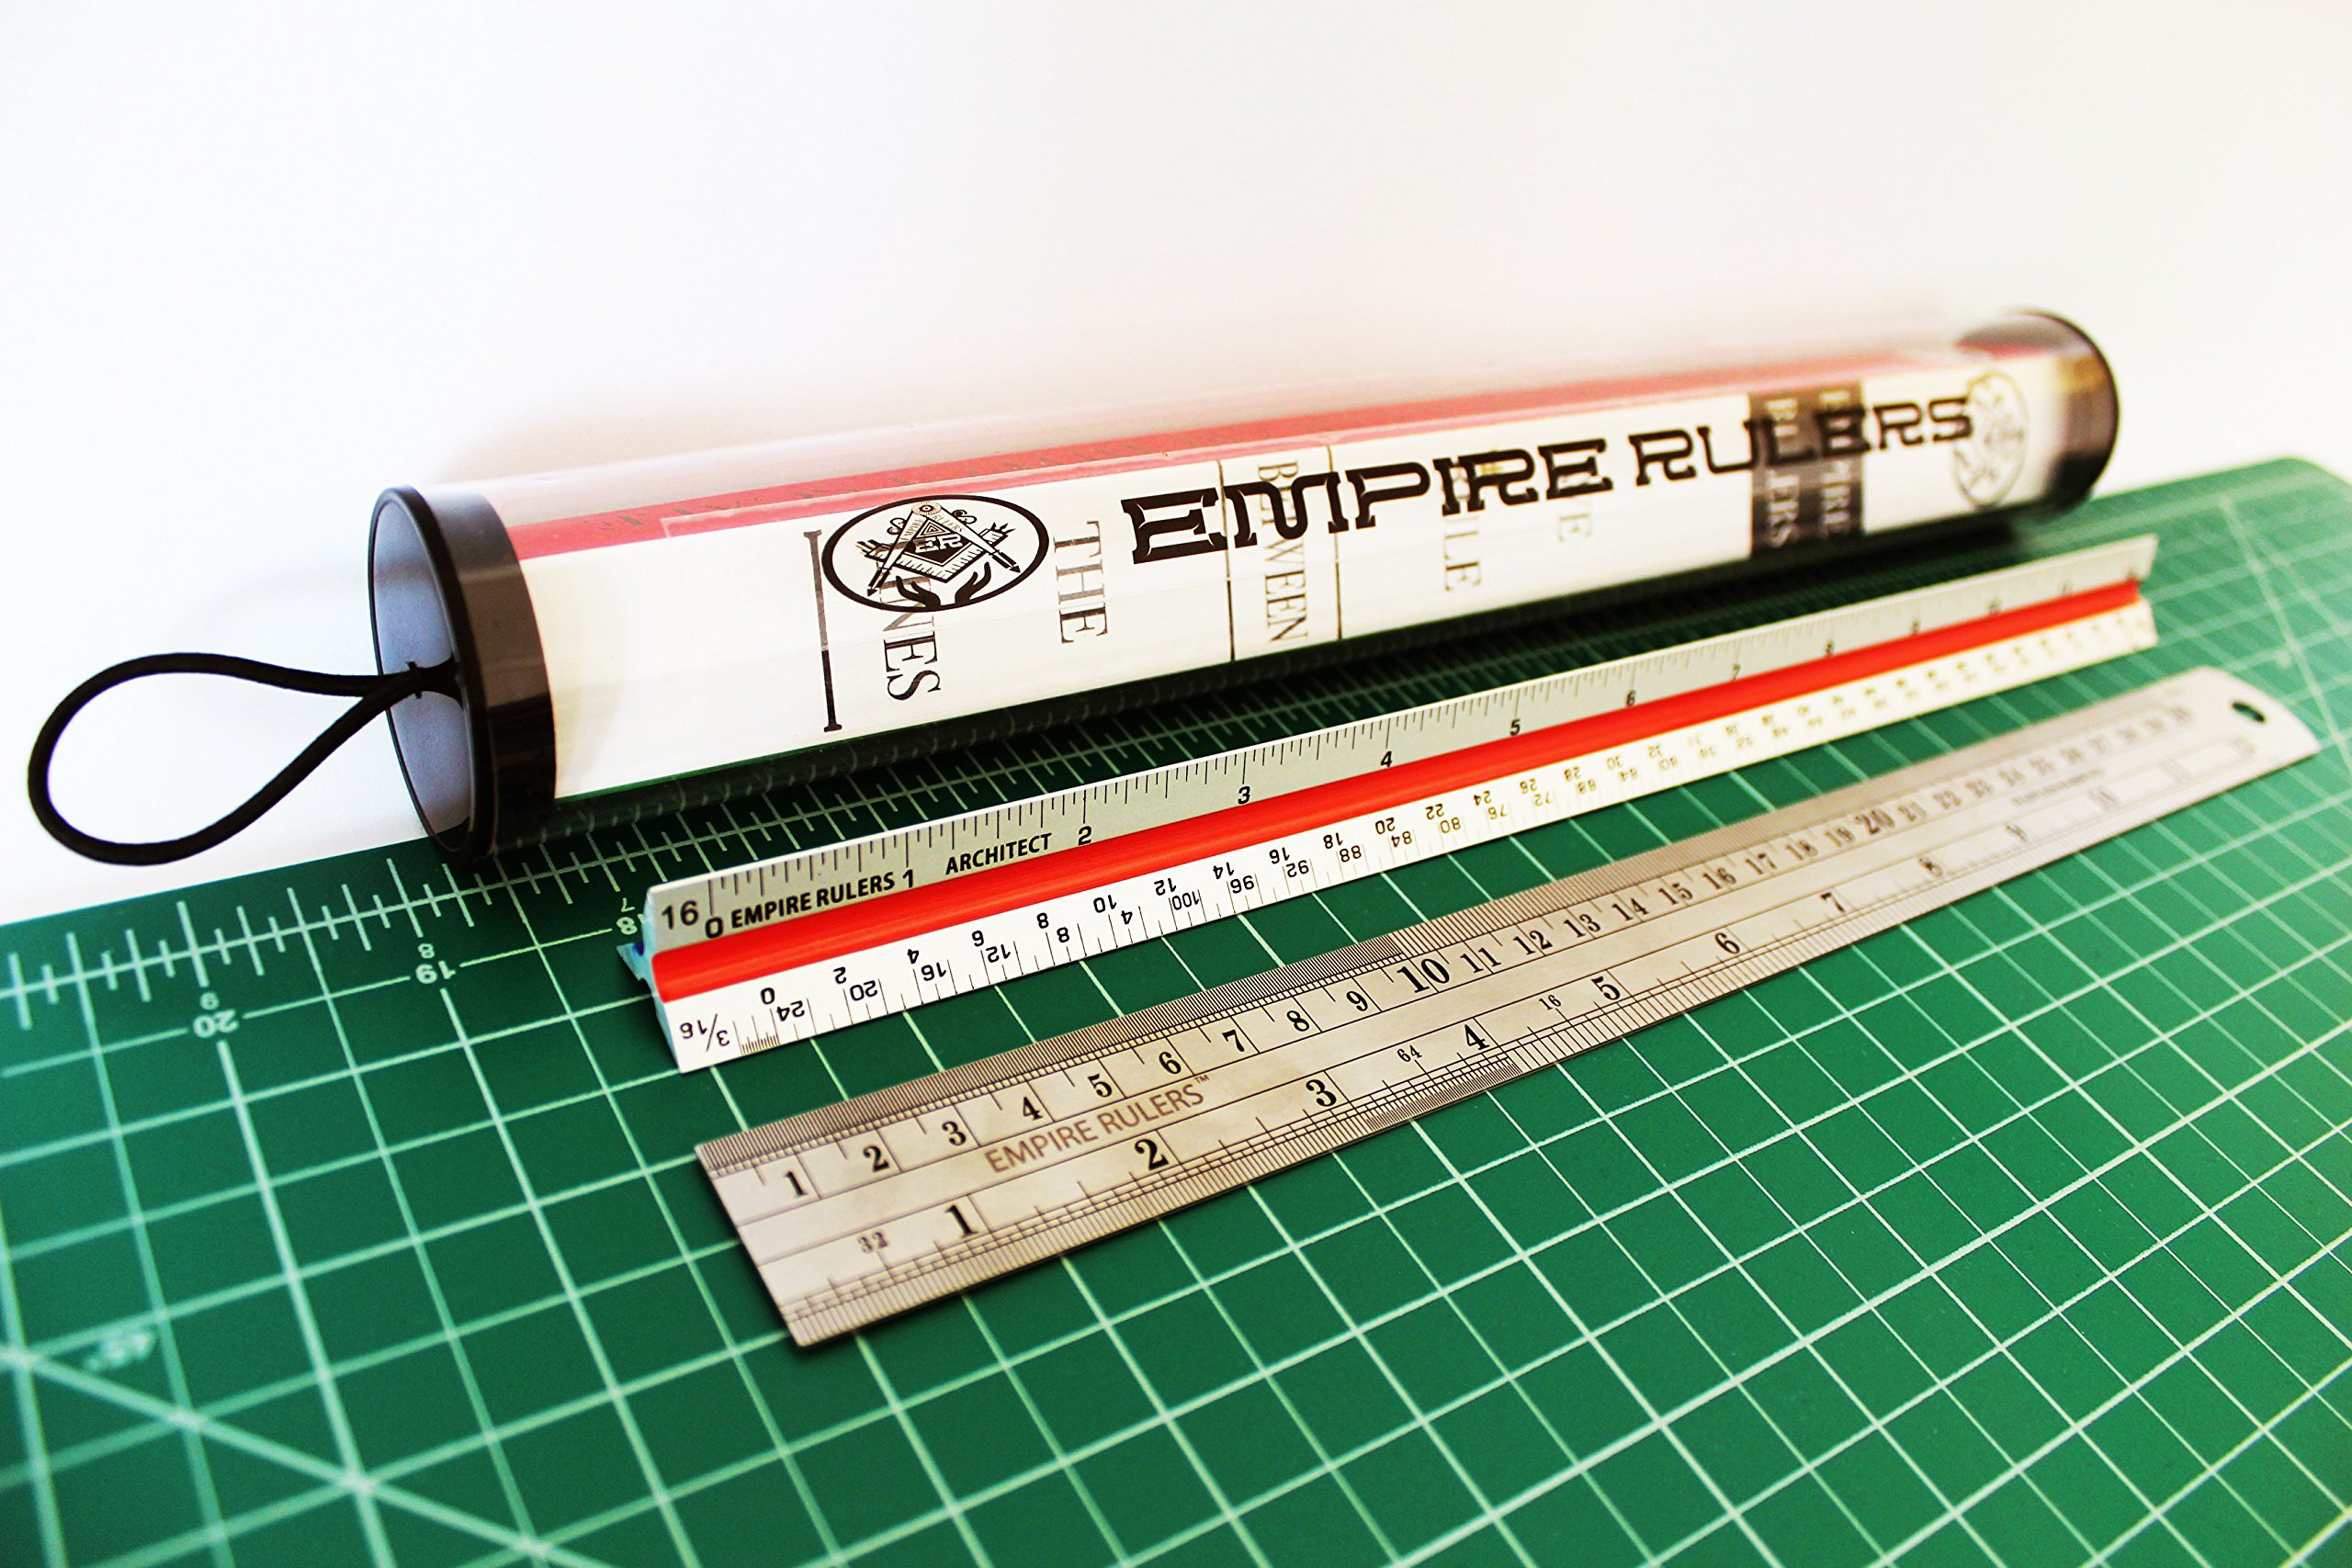 Empire Rulers 12'' Professional Grade Triangular Architect Scale Aluminum Color-Coded Ruler + Heavy Duty Rounded Edge Stainless Steel Ruler with Conversion Table (Laser Etched Markings) by EMPIRE RULERS